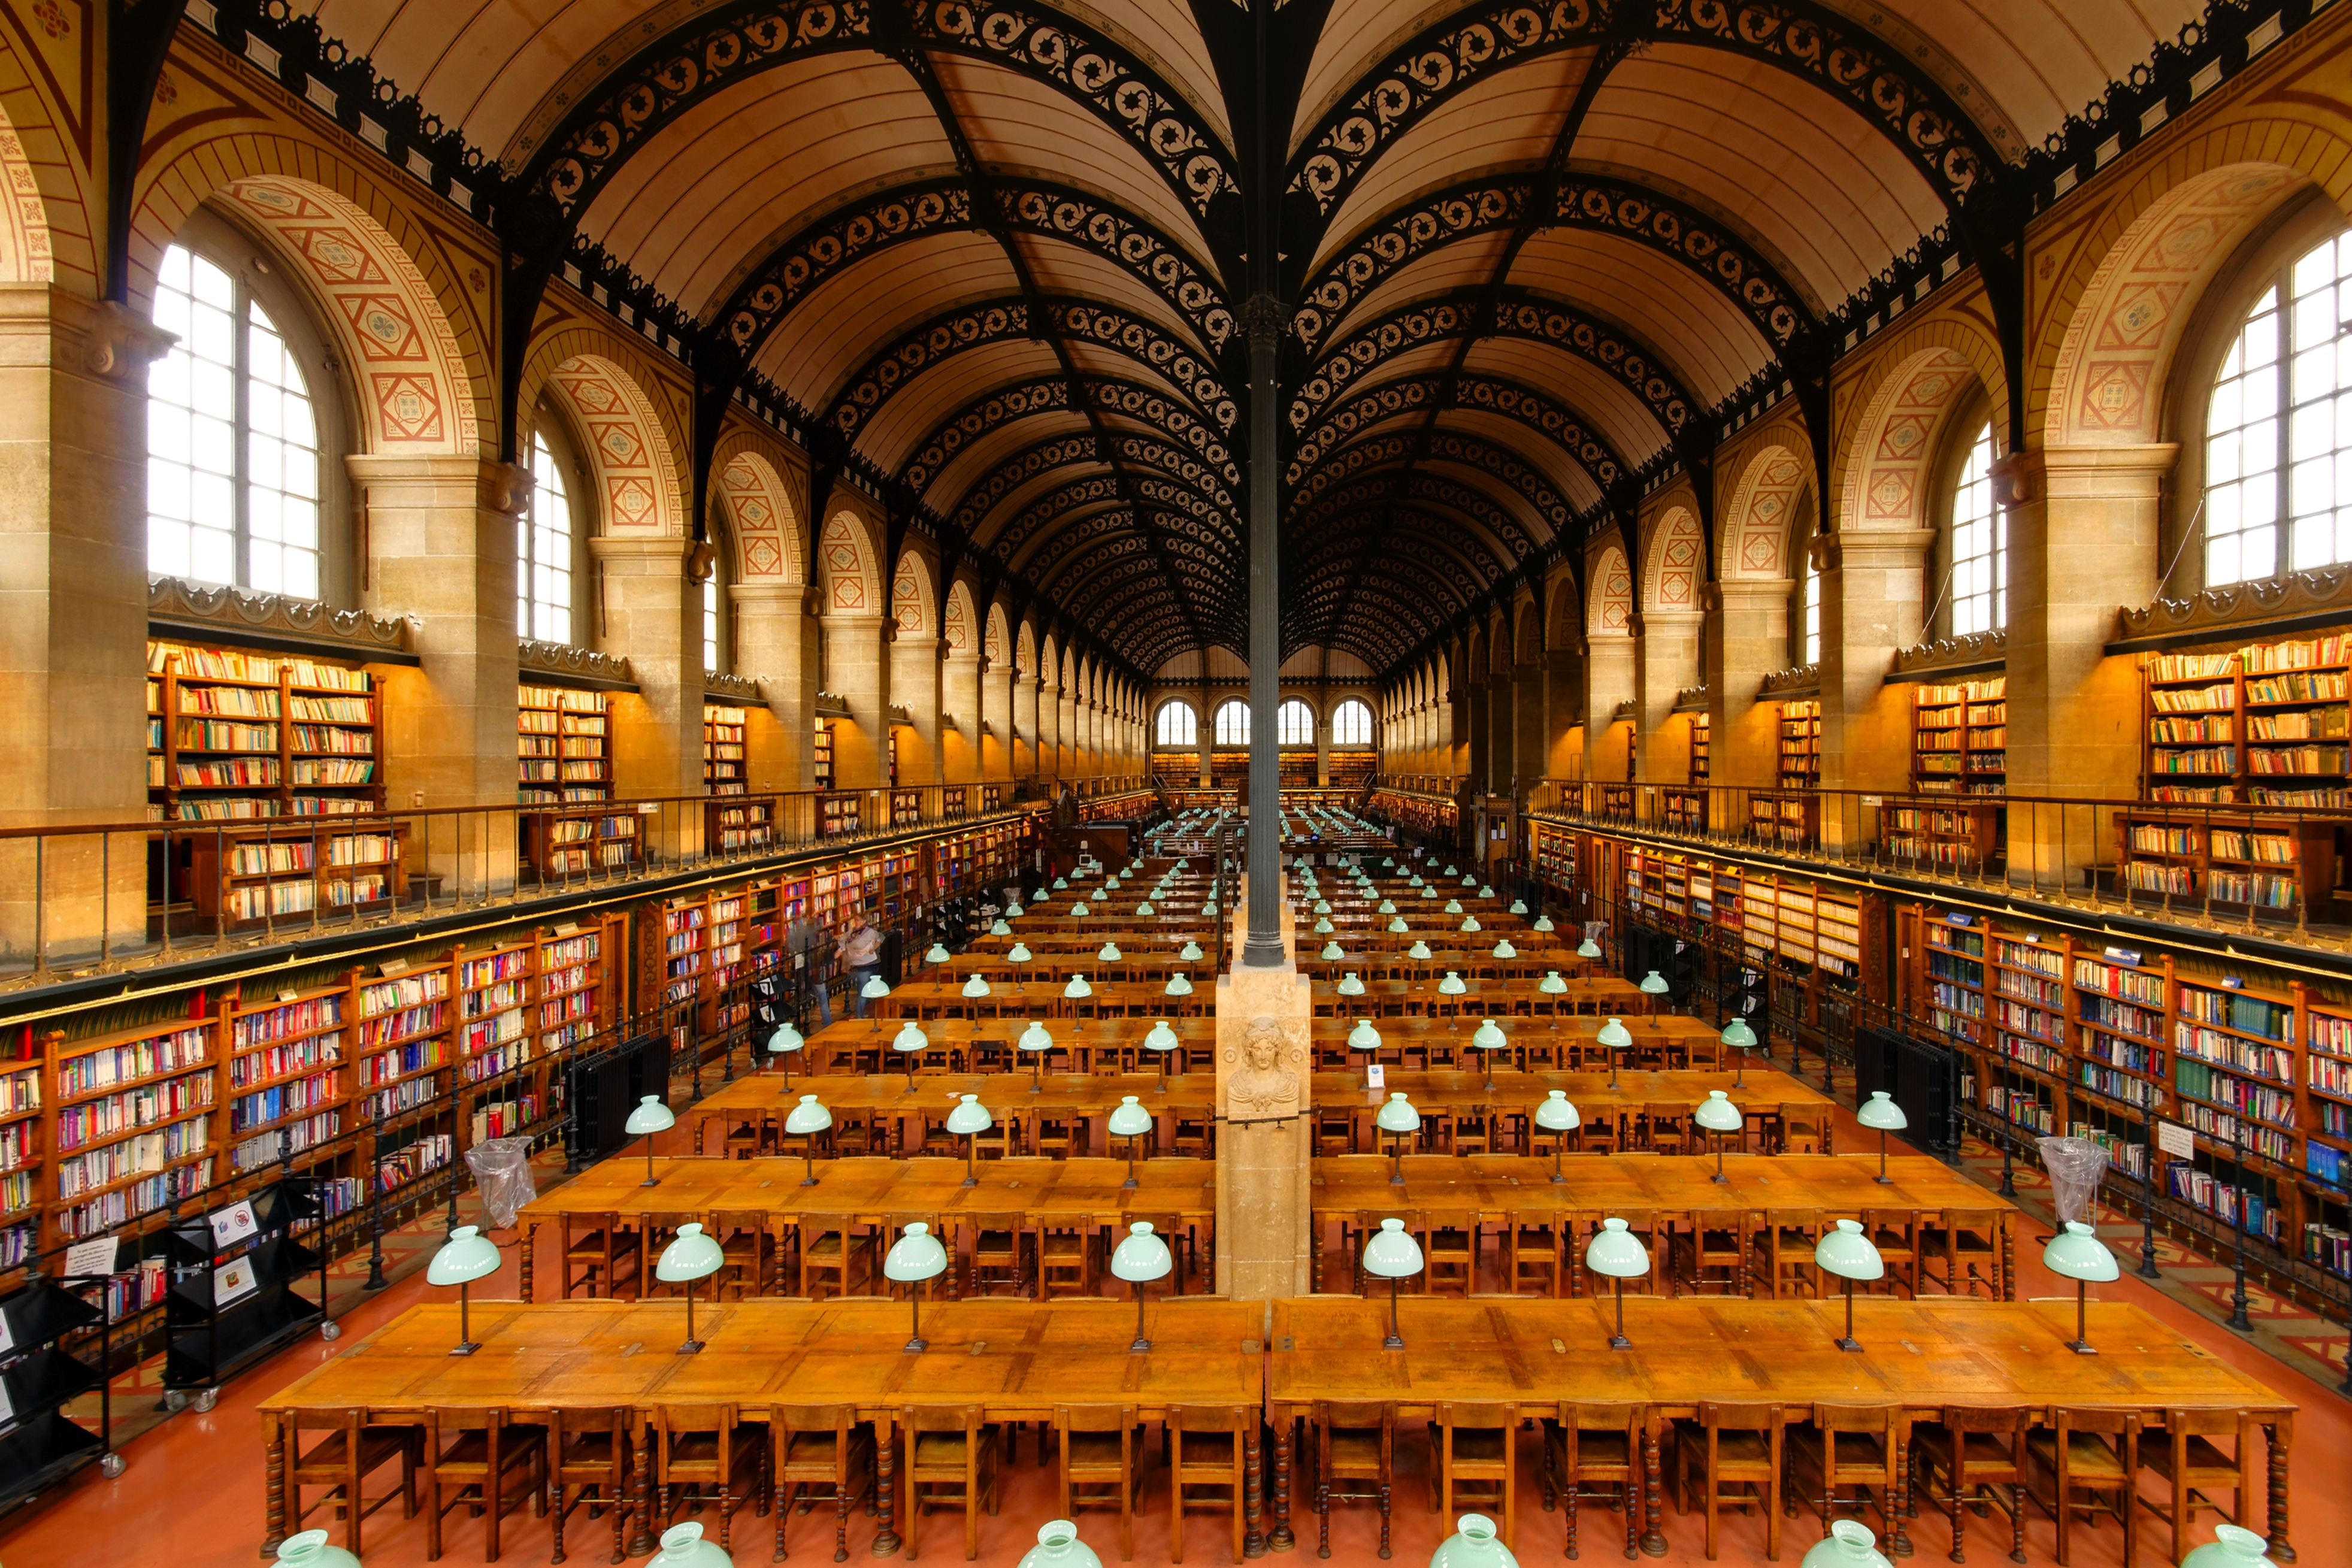 https://upload.wikimedia.org/wikipedia/commons/e/eb/Salle_de_lecture_Bibliotheque_Sainte-Genevieve_n02.jpg